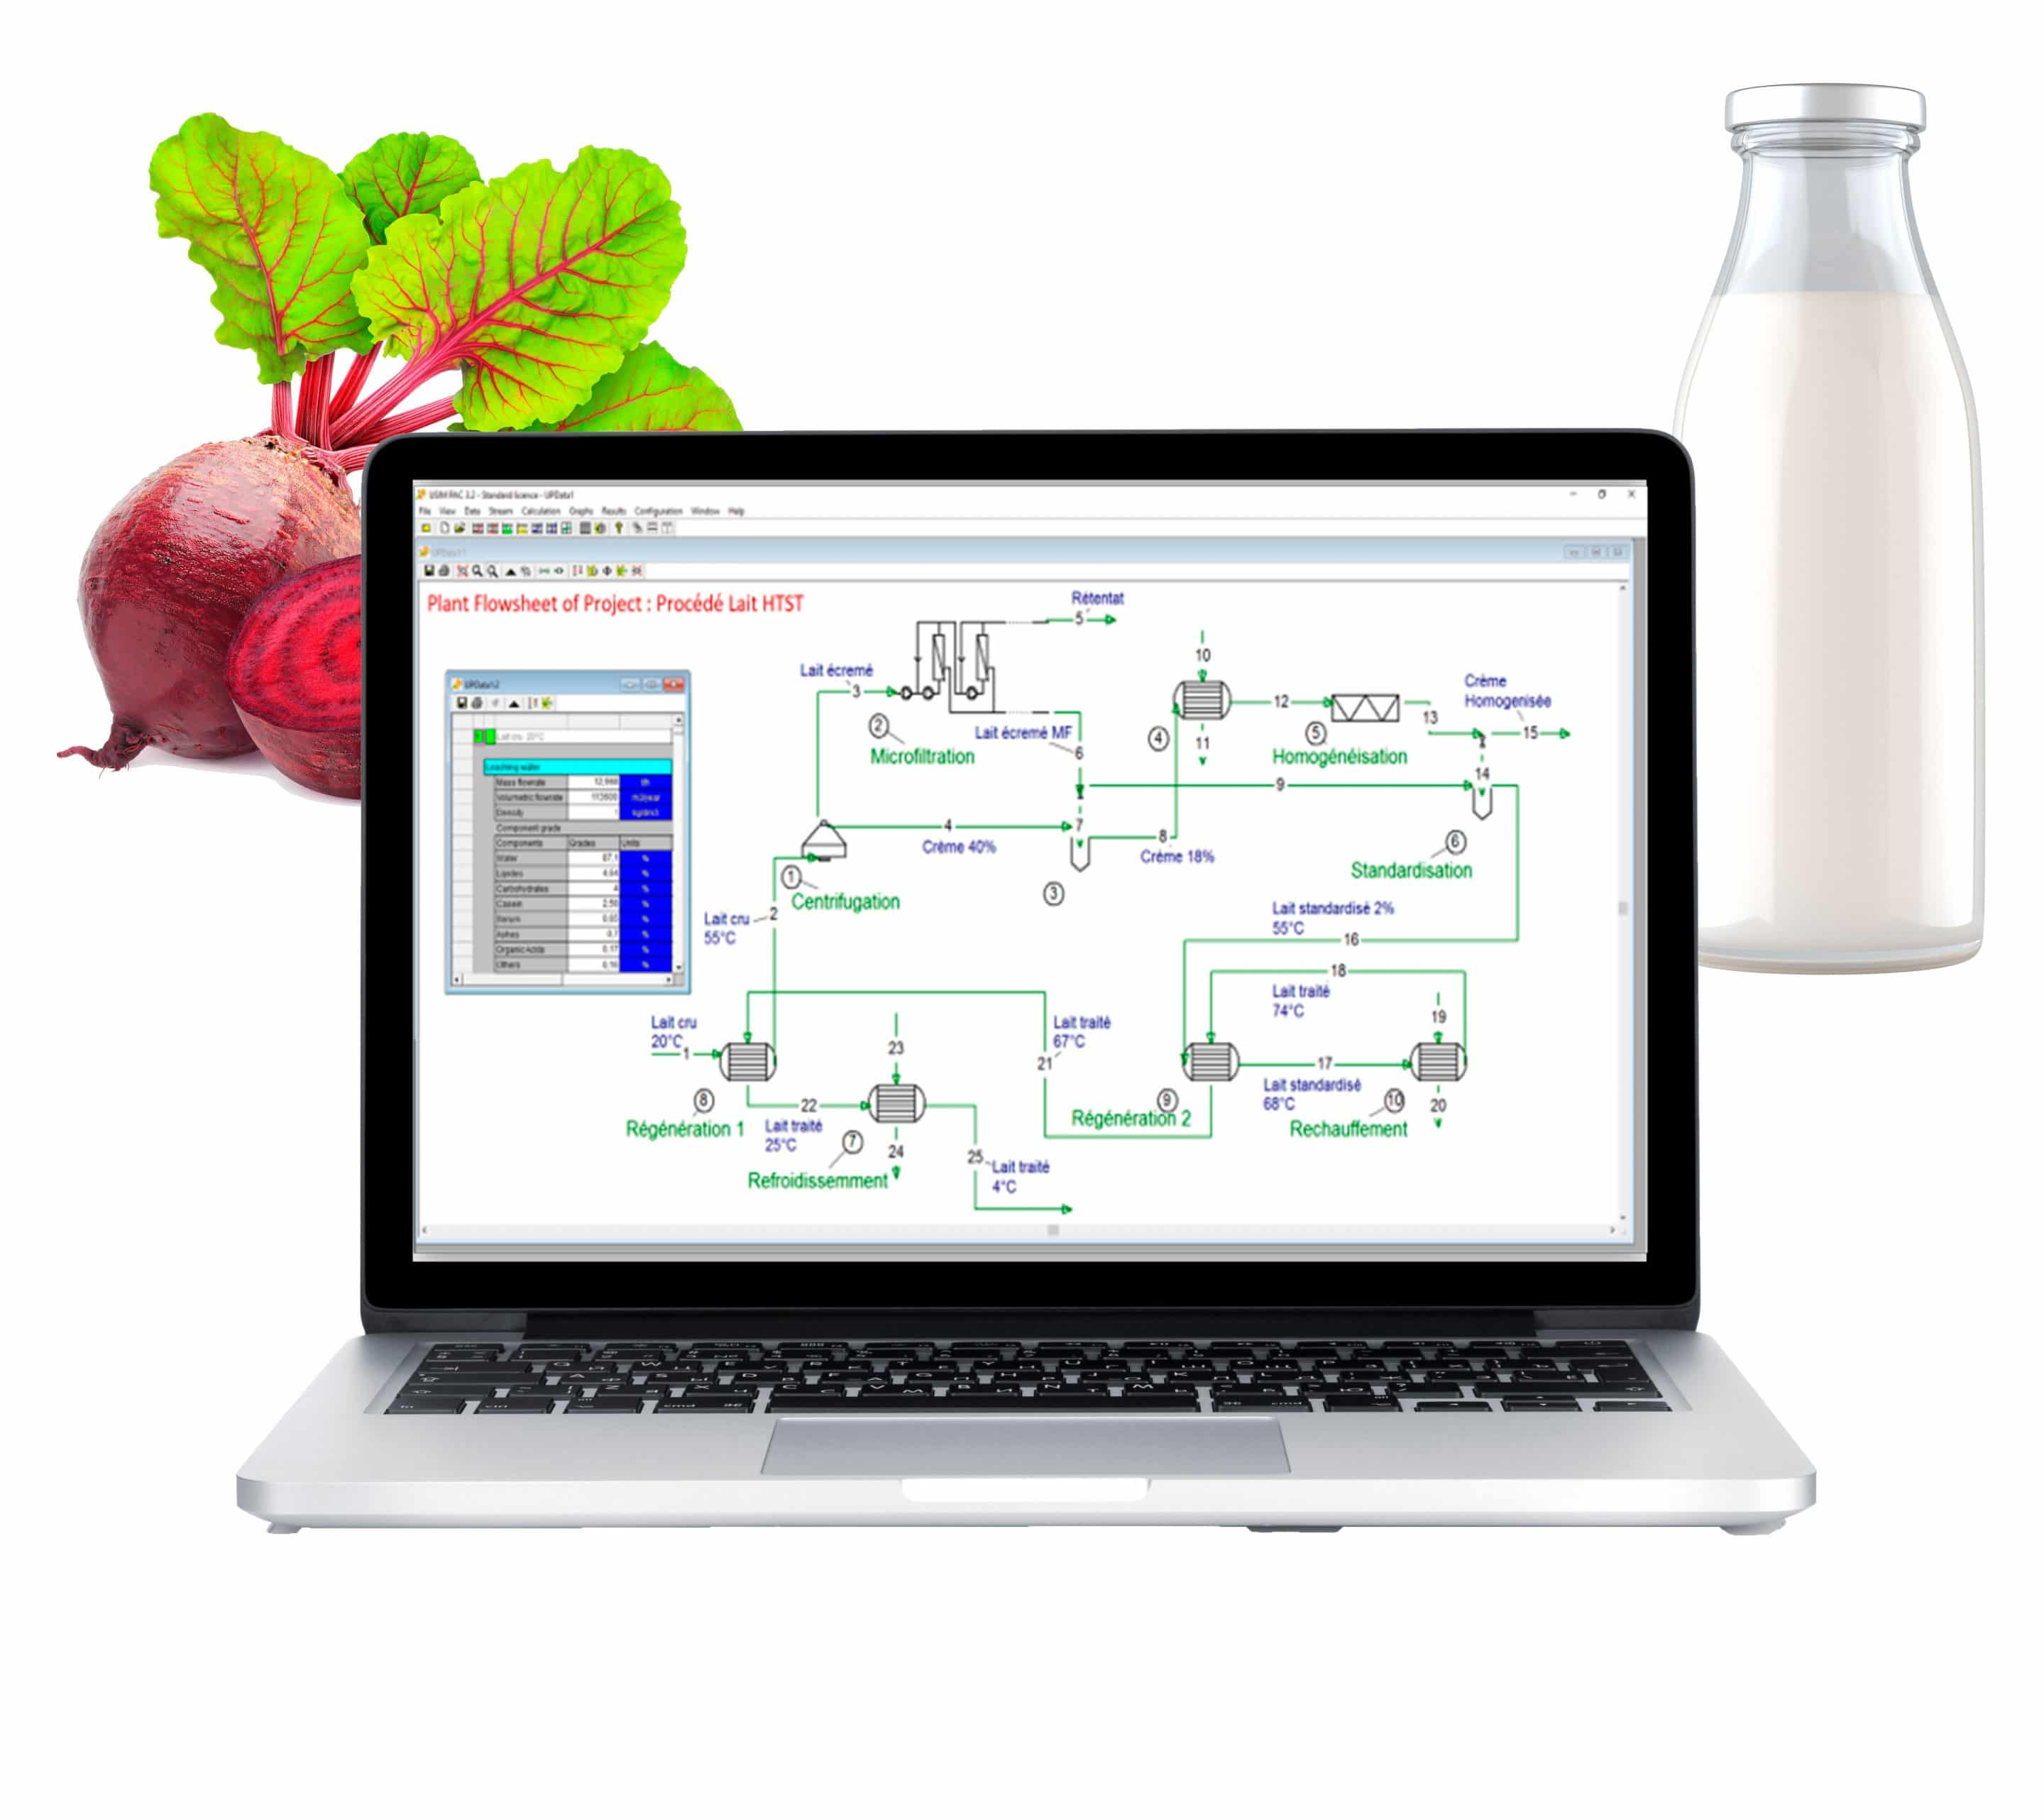 Process simulation software for dairy processing plants